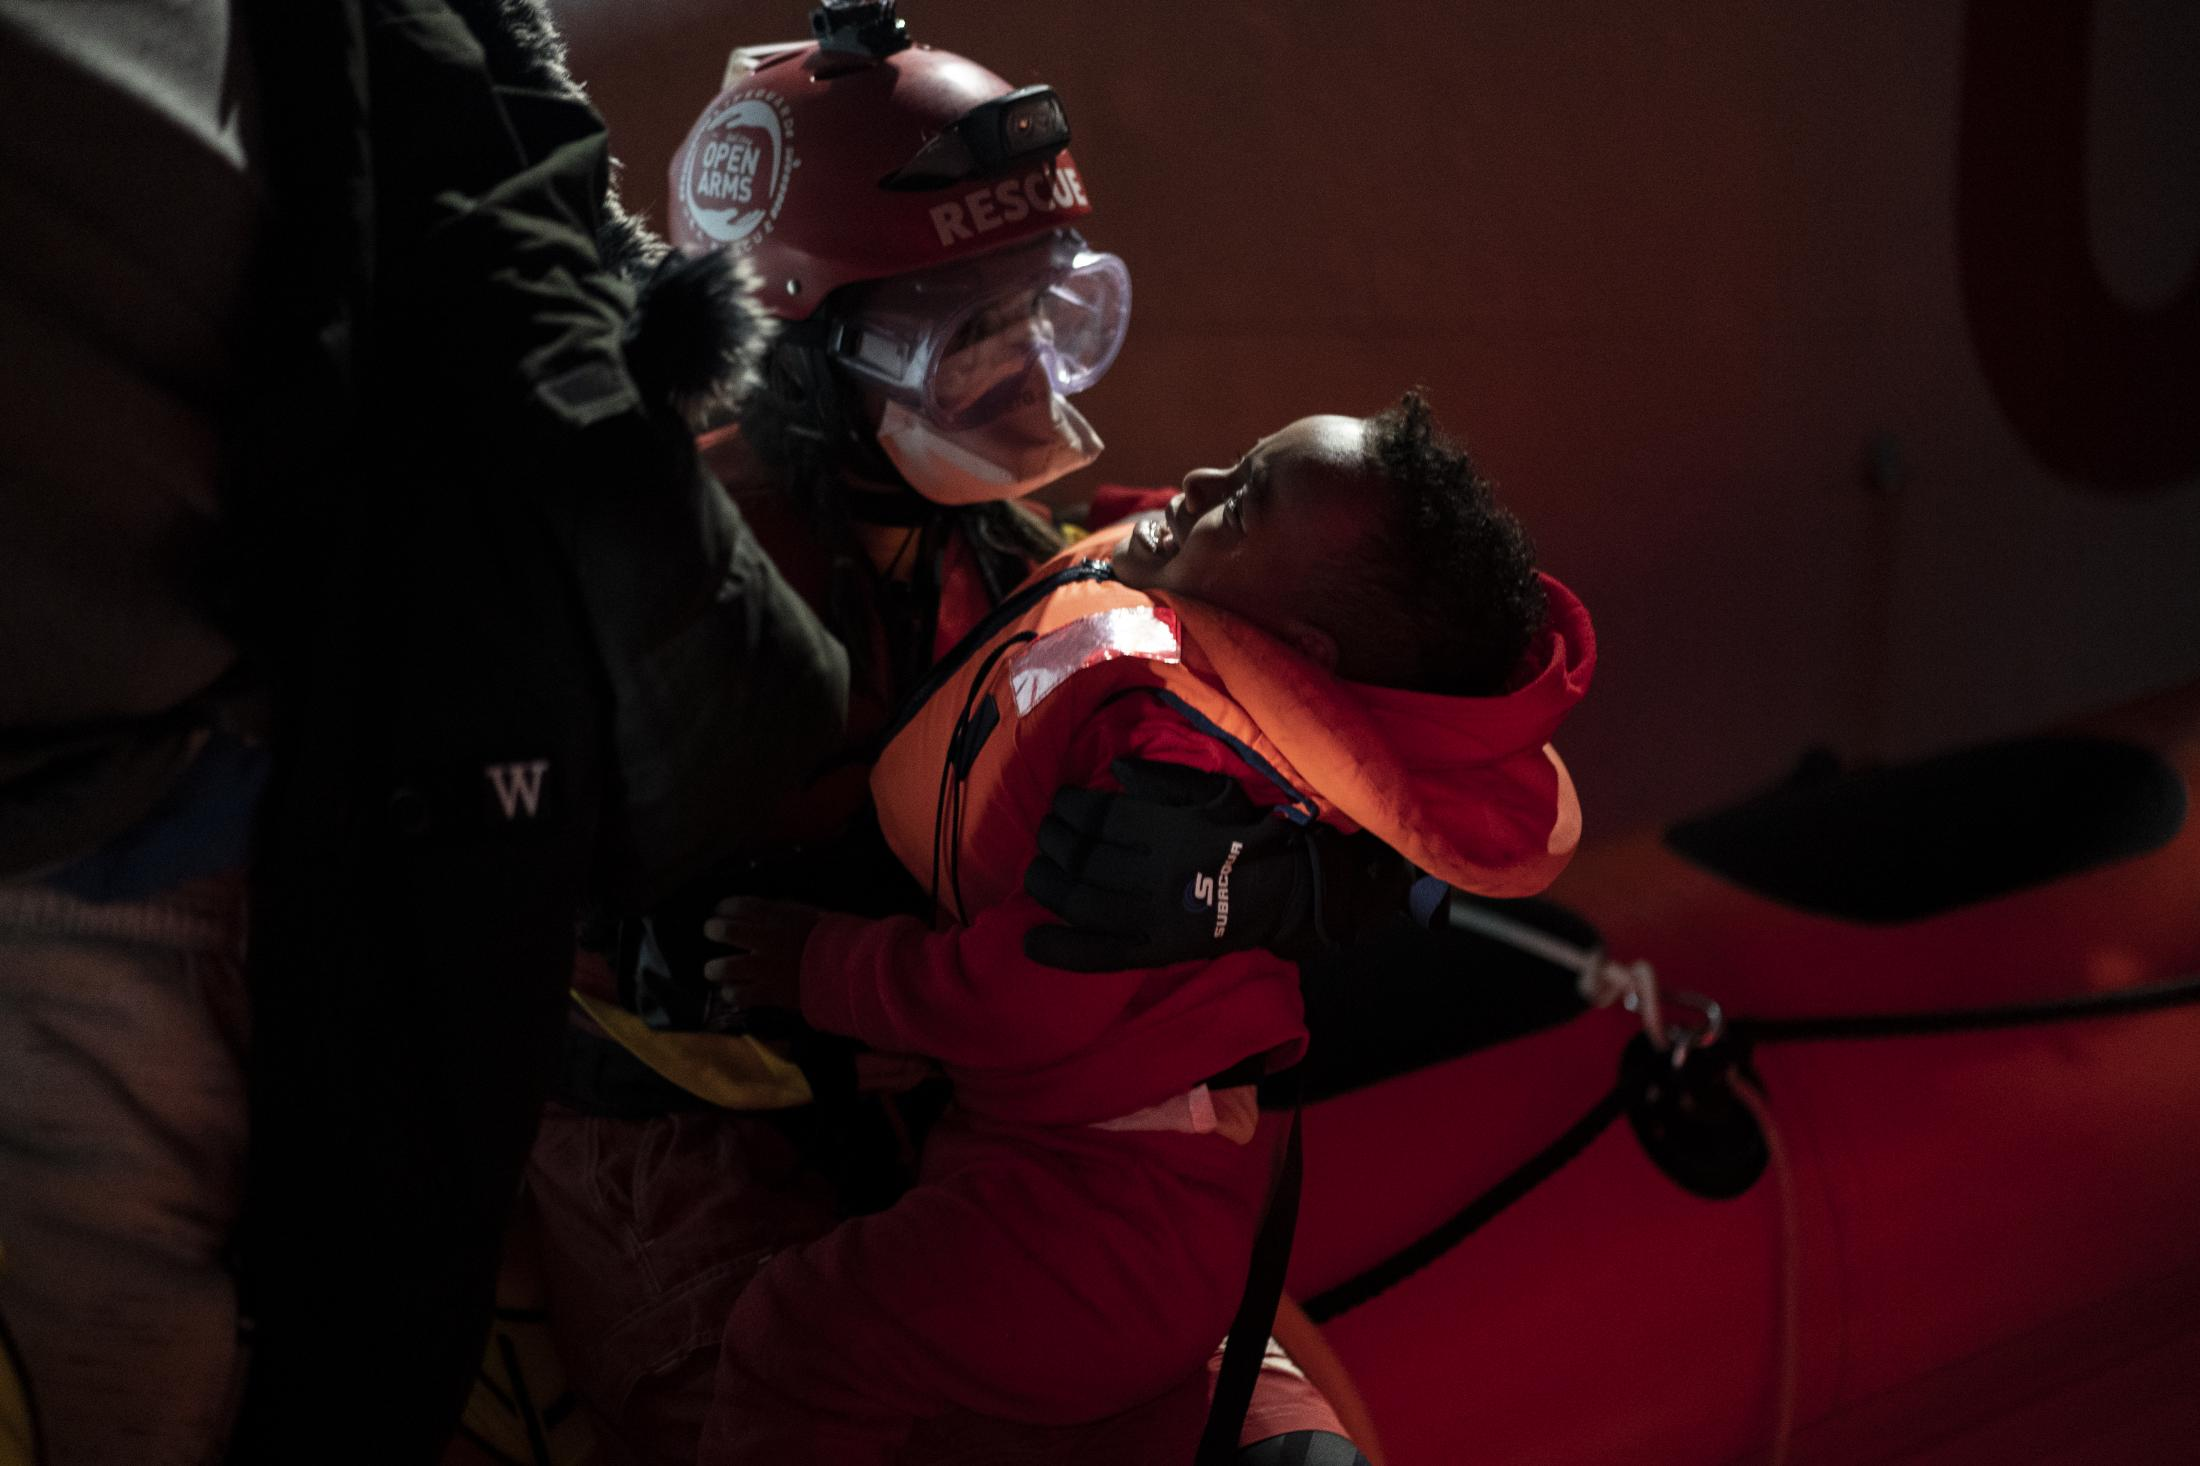 A baby is rescued by aid workers of the Spanish NGO Open Arms, after being located sailing adrift on an overcrowded wooden boat in the Mediterranean sea, about 85 miles north of Libya, on Thursday, Dec. 31, 2020. (AP Photo/Joan Mateu)